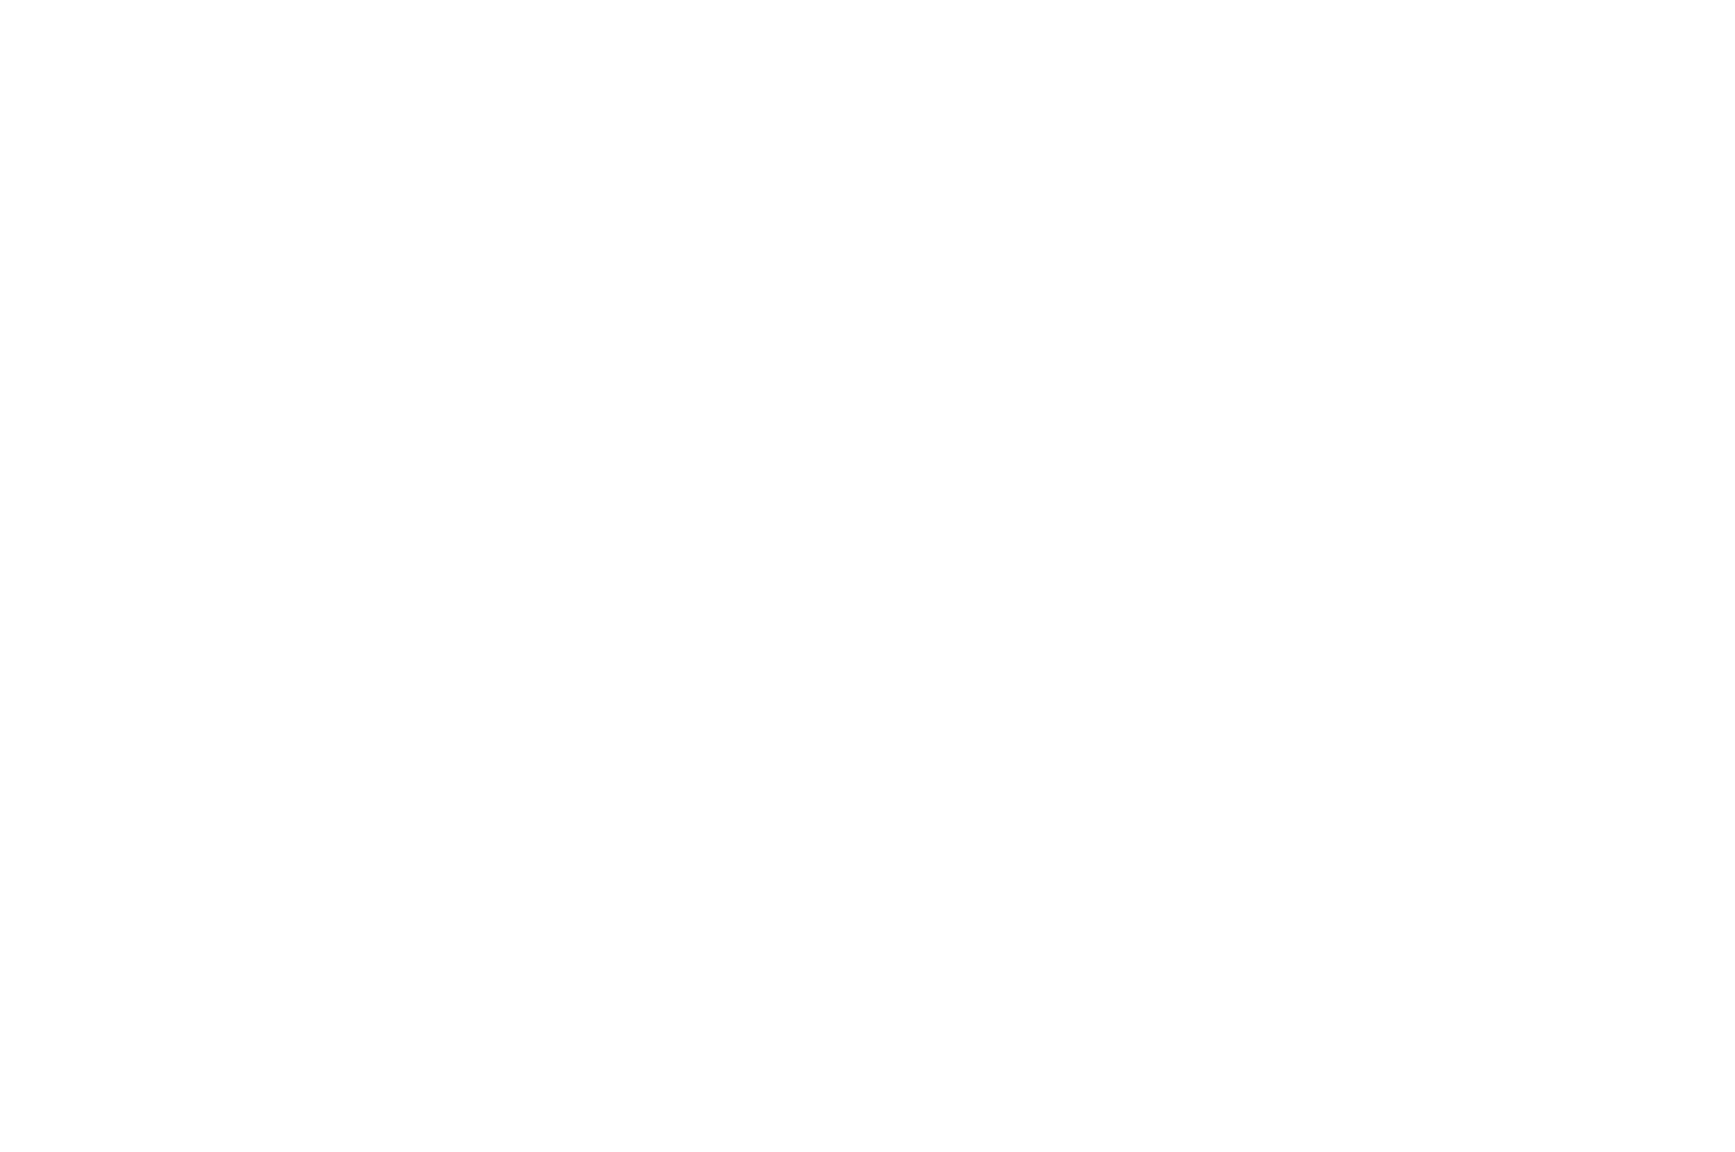 OFFICIAL SELECTION - Asian Film Festival of Dallas - 2019 (1).png